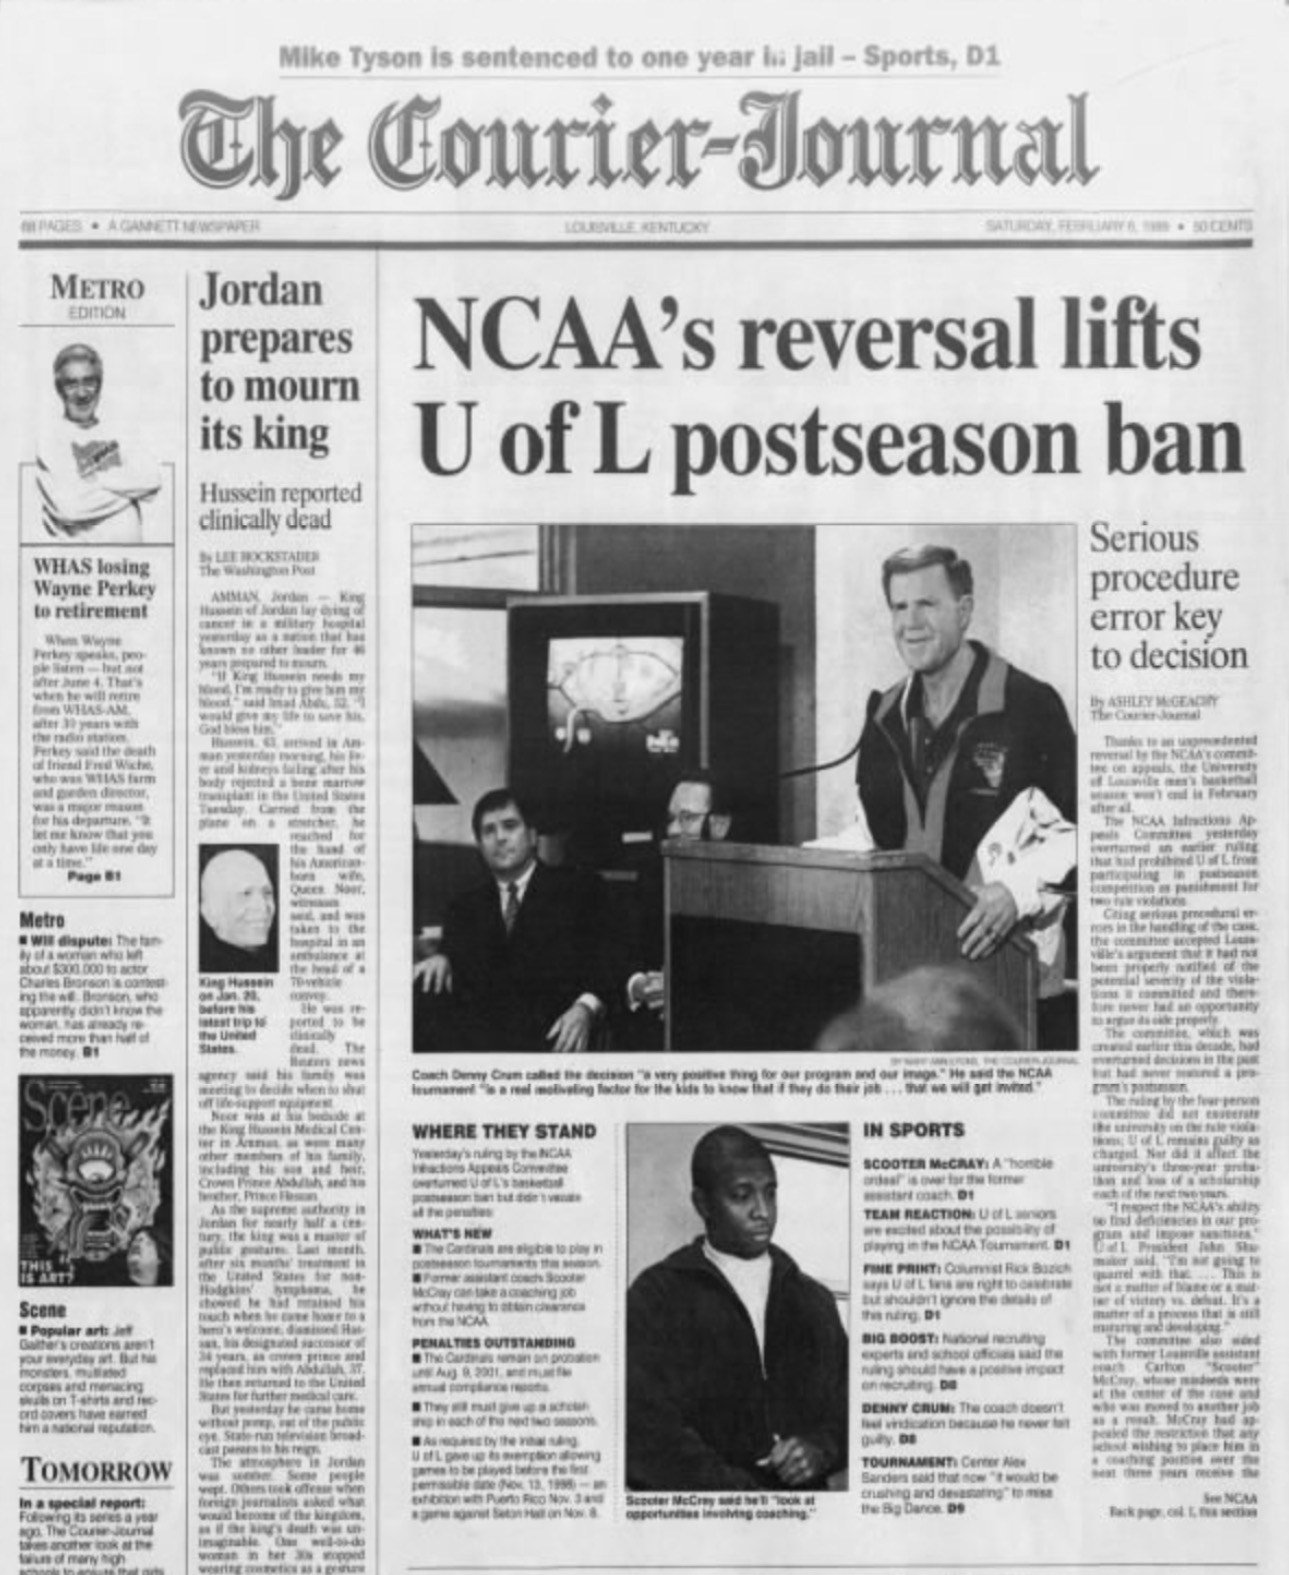 The Courier-Journal front page from Feb. 6, 1999, reporting Louisville's victory in an NCAA appeal. (Courier-Journal archive)